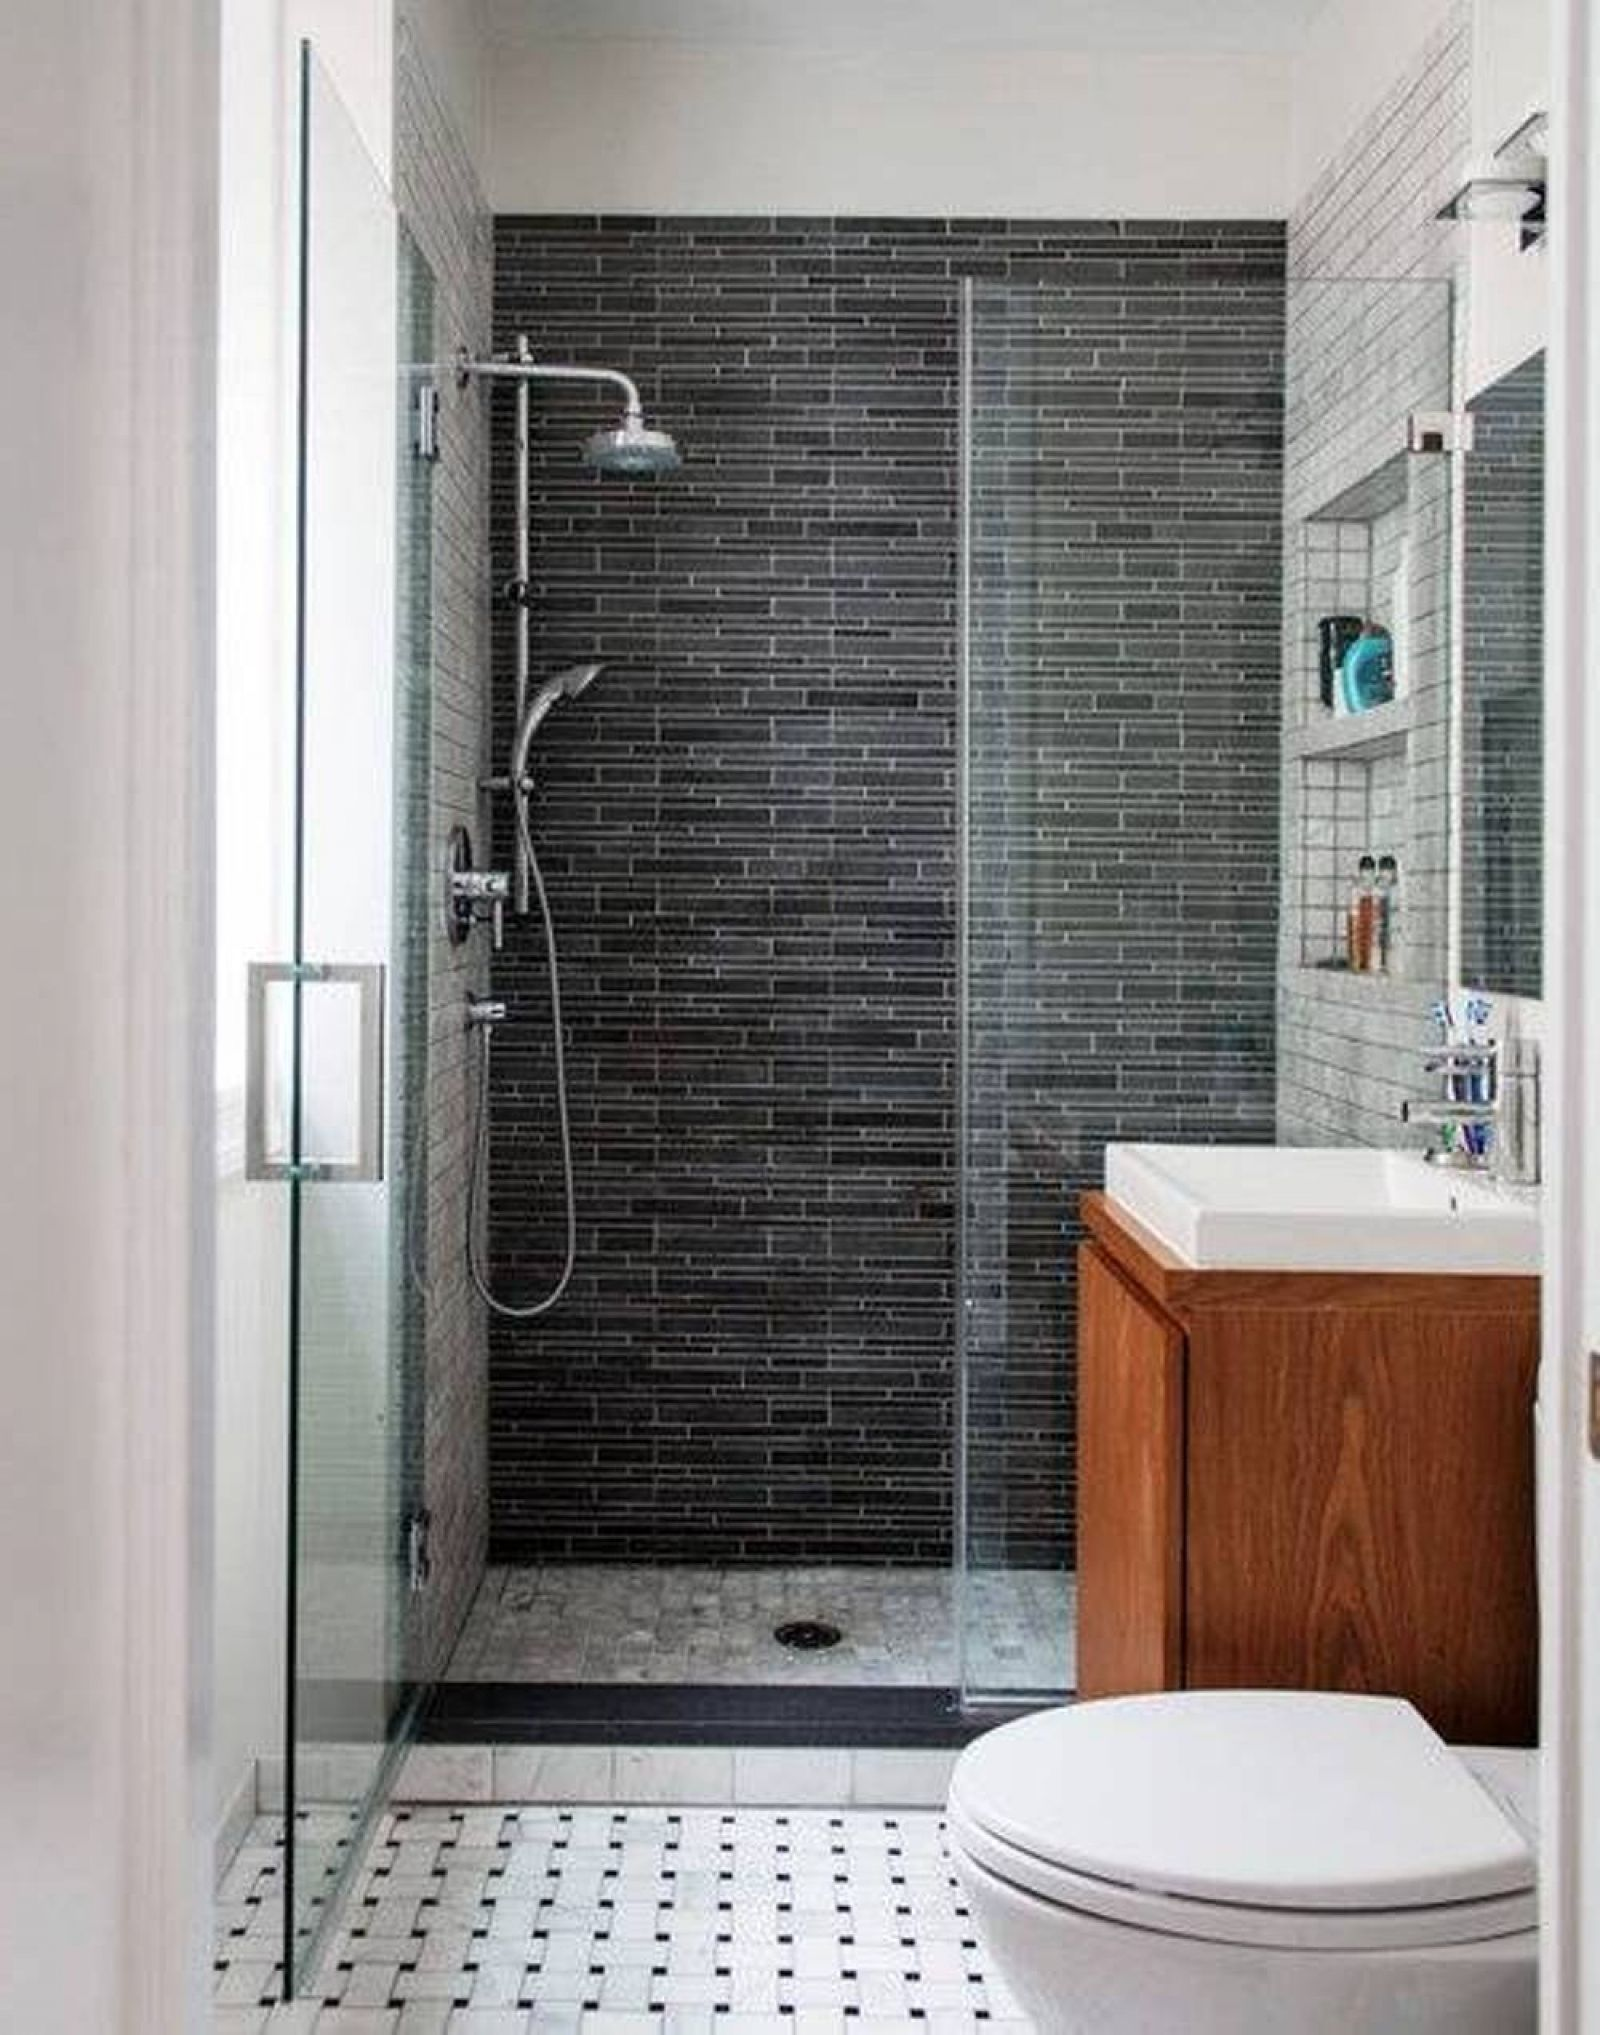 Unique Images Of Small Bathrooms Designs For House Design Ideas With Images Of Small Bathrooms Designs J Cheap Bathroom Remodel Simple Bathroom Bathroom Layout